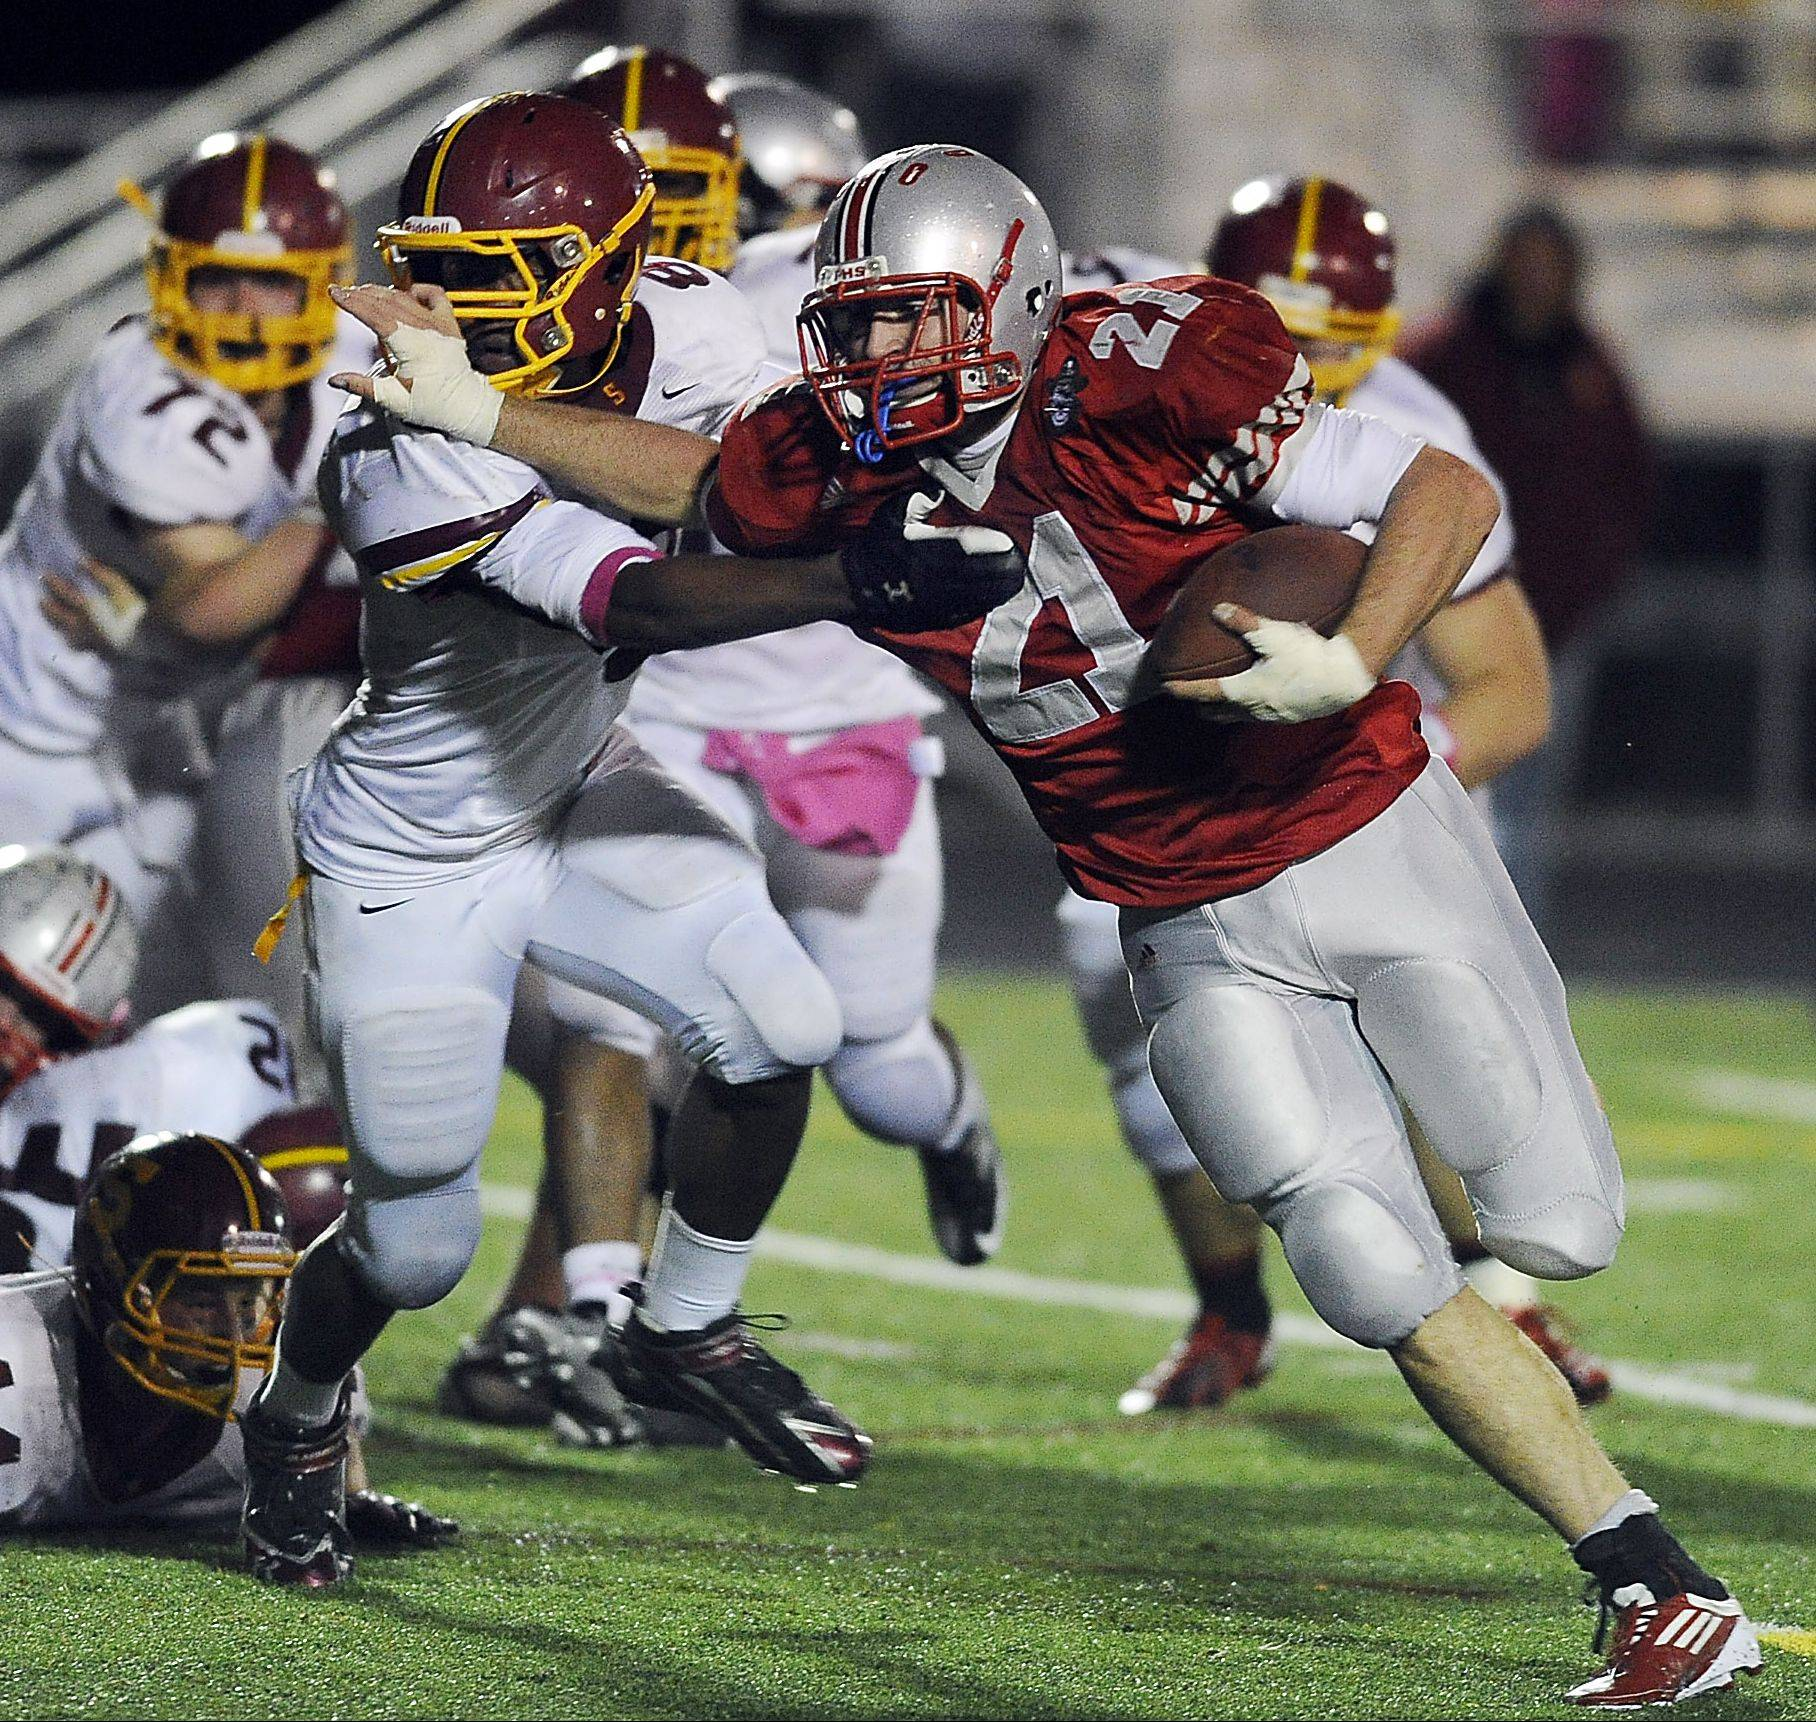 Palatine�s John Serio fights off a Schaumburg defender on a first-half touchdown run to help the Pirates top Schaumburg 51-18 and clinch an outright championship in the Mid-Suburban West.